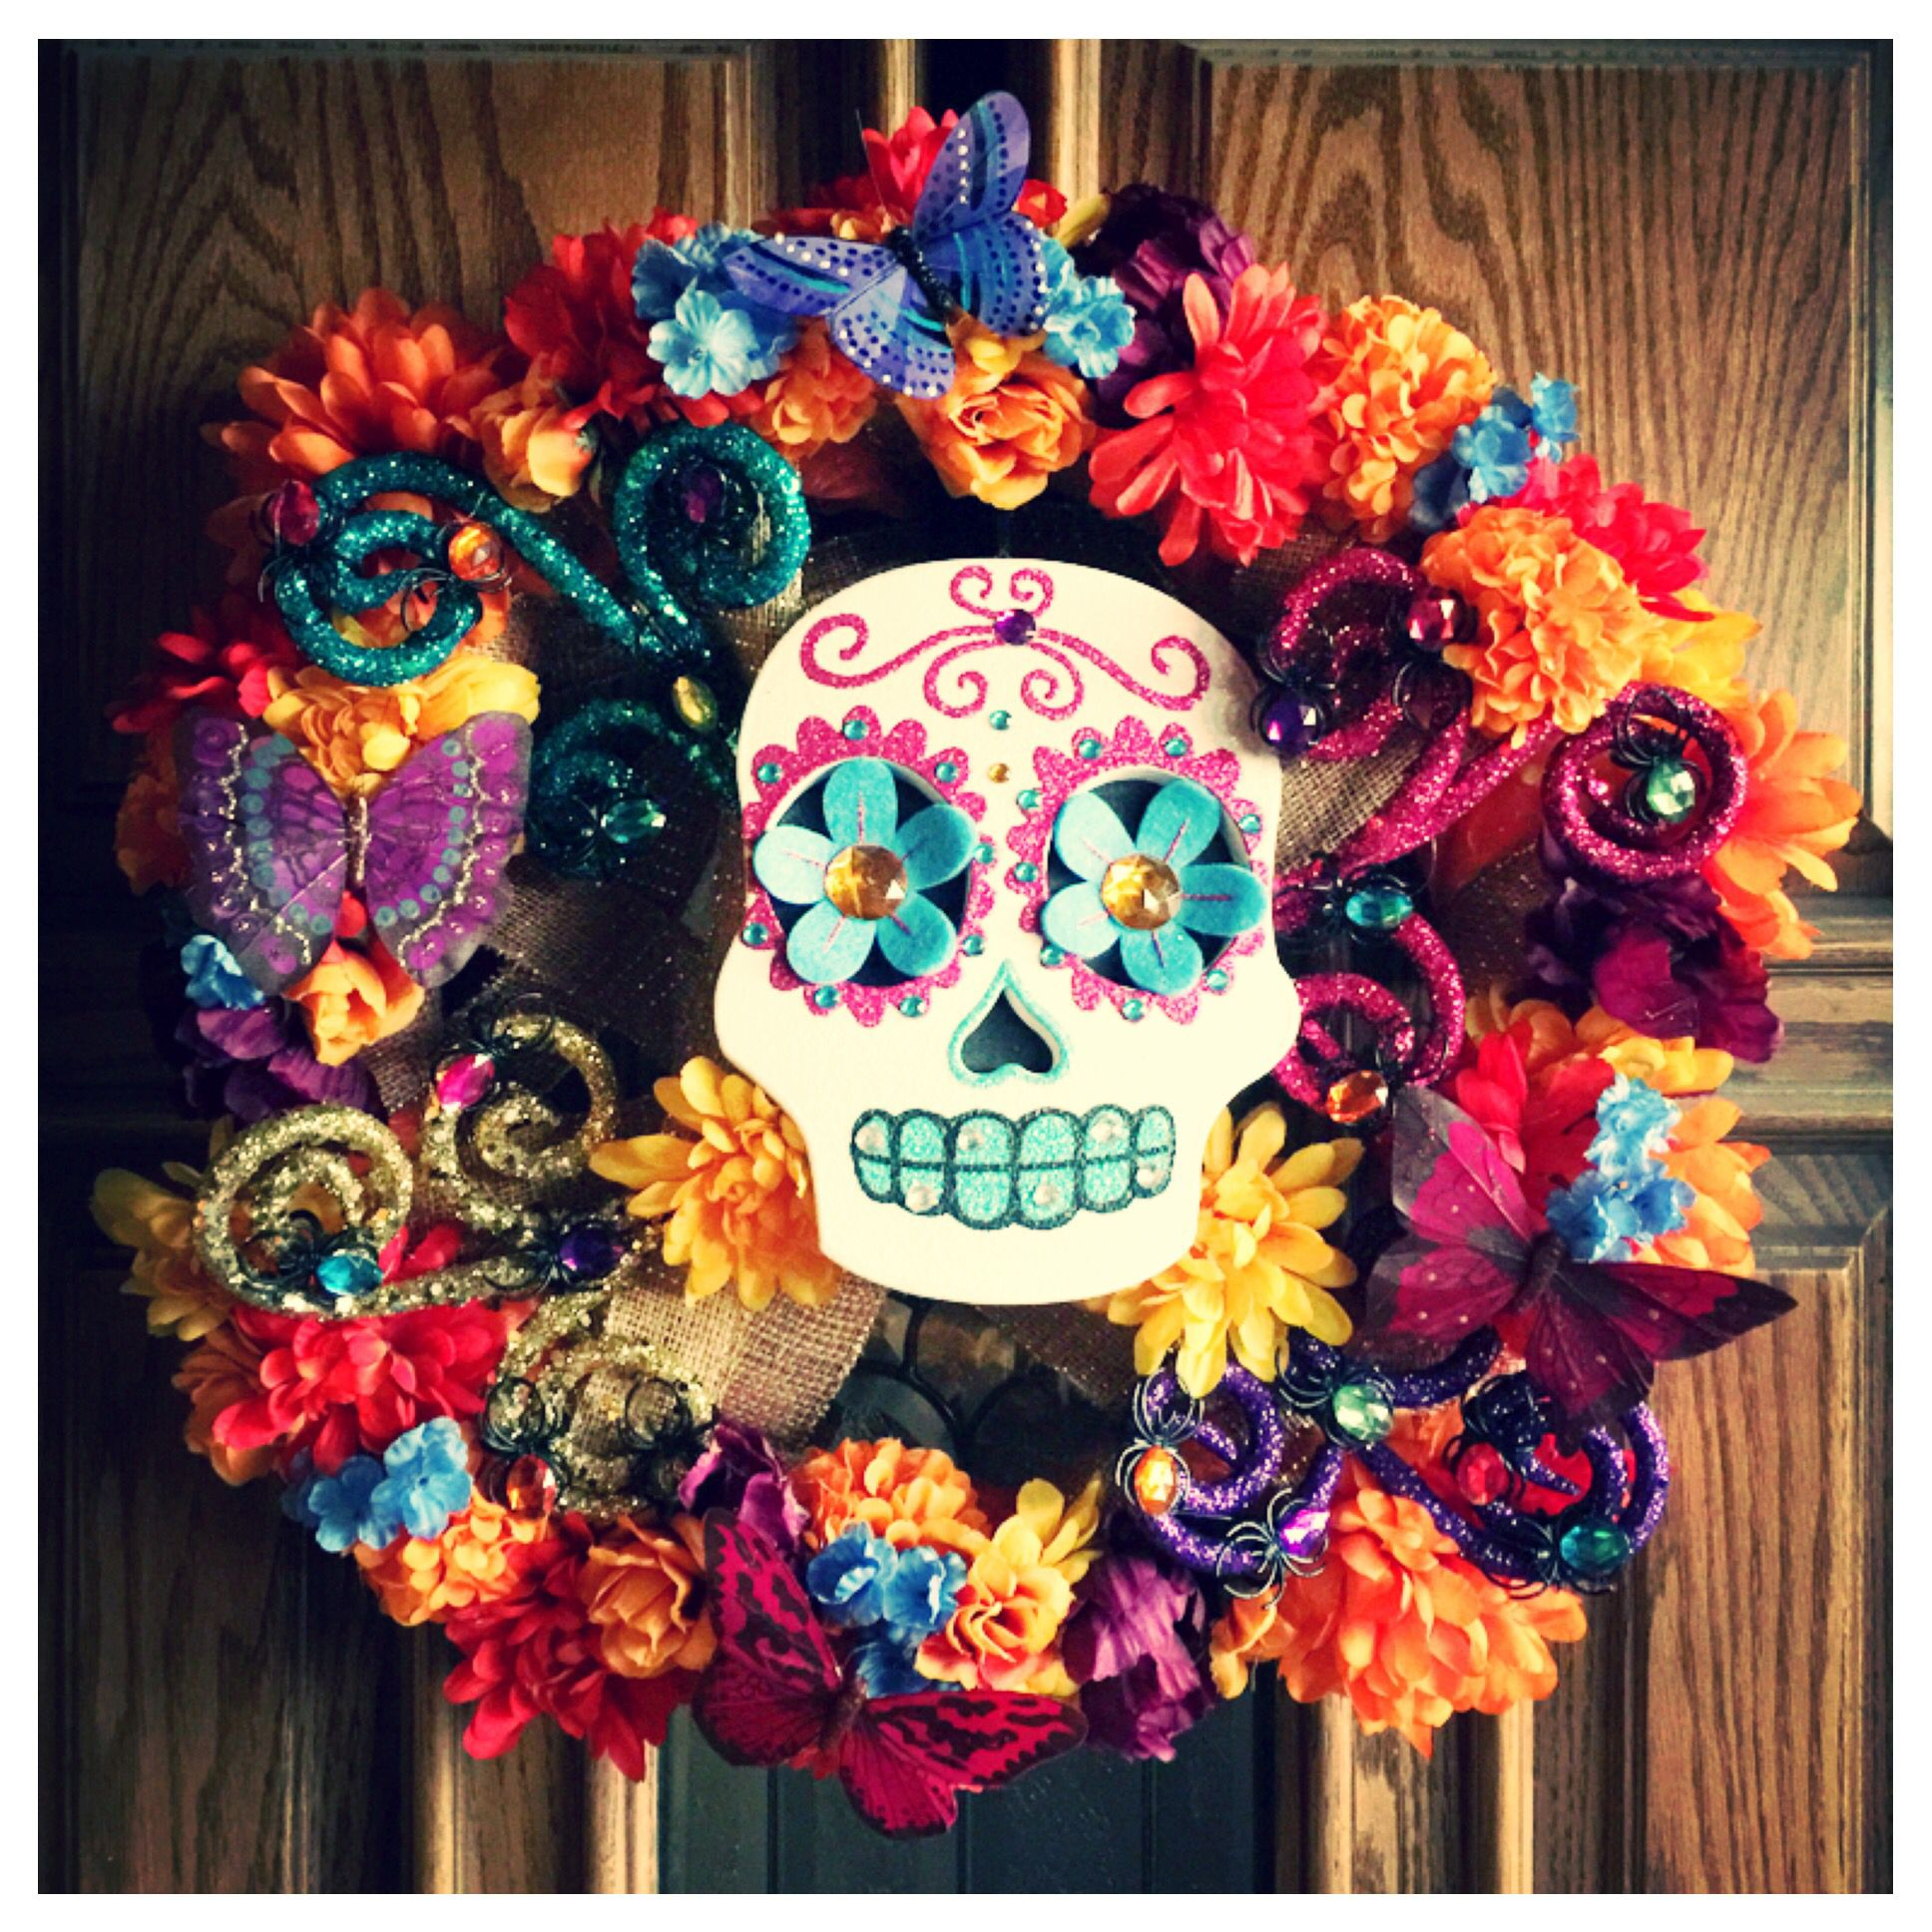 dia de los muertos wreath made with burlap butterflies jeweled spiders flowers and